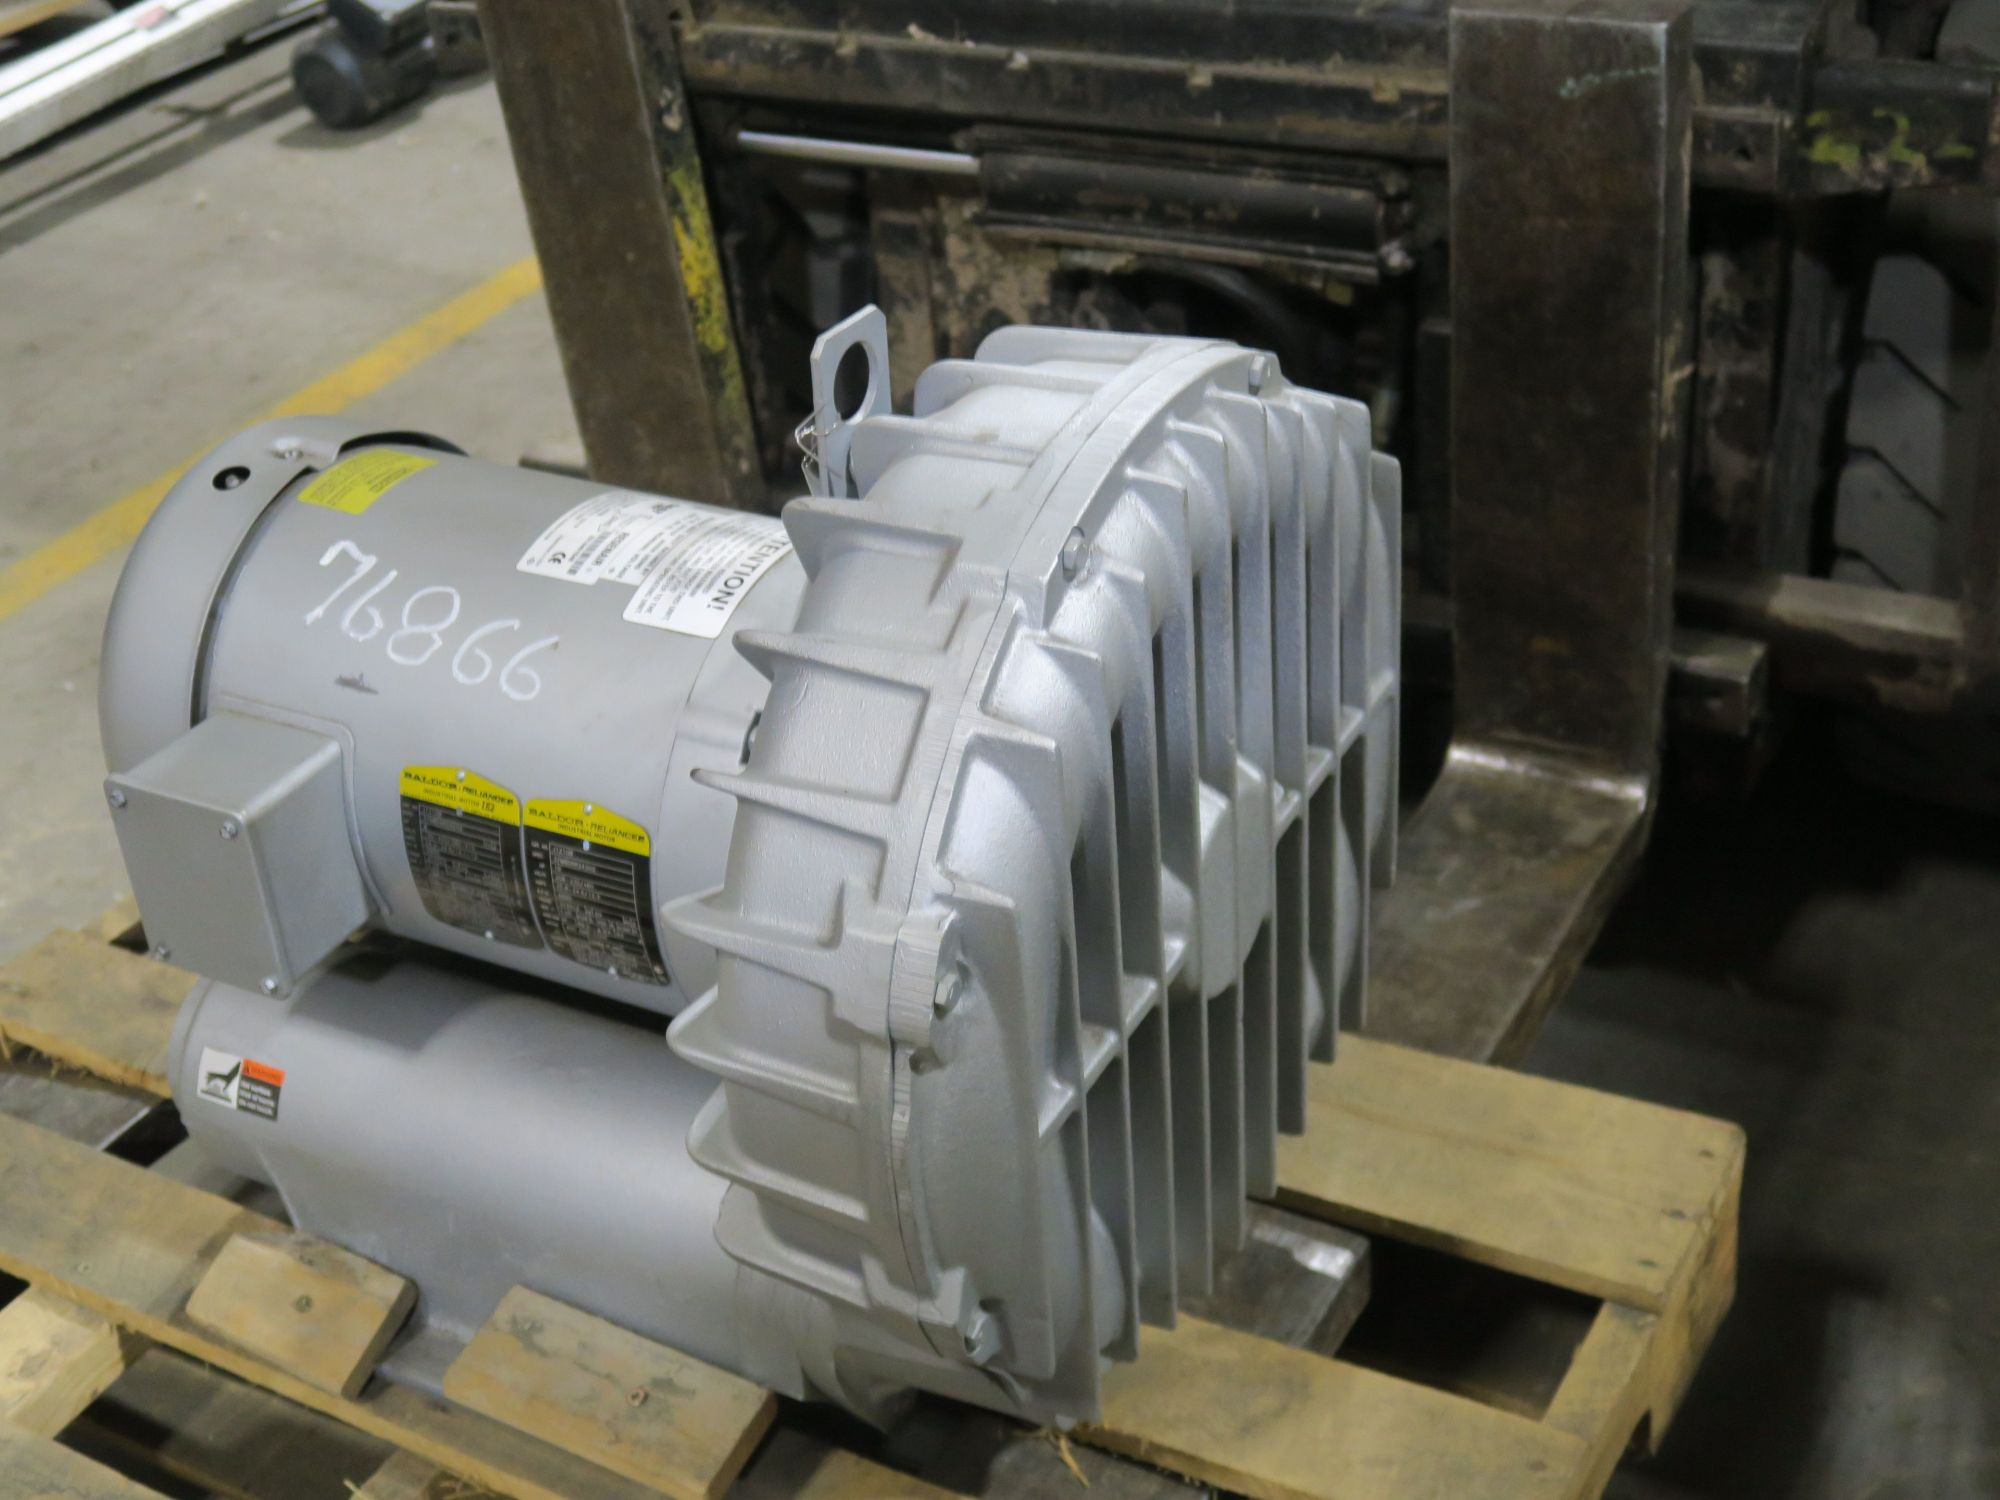 hight resolution of blower gast idex r7100a 3 gast mfg r7100a 3 10hp 3600 rpm store surplus for sale